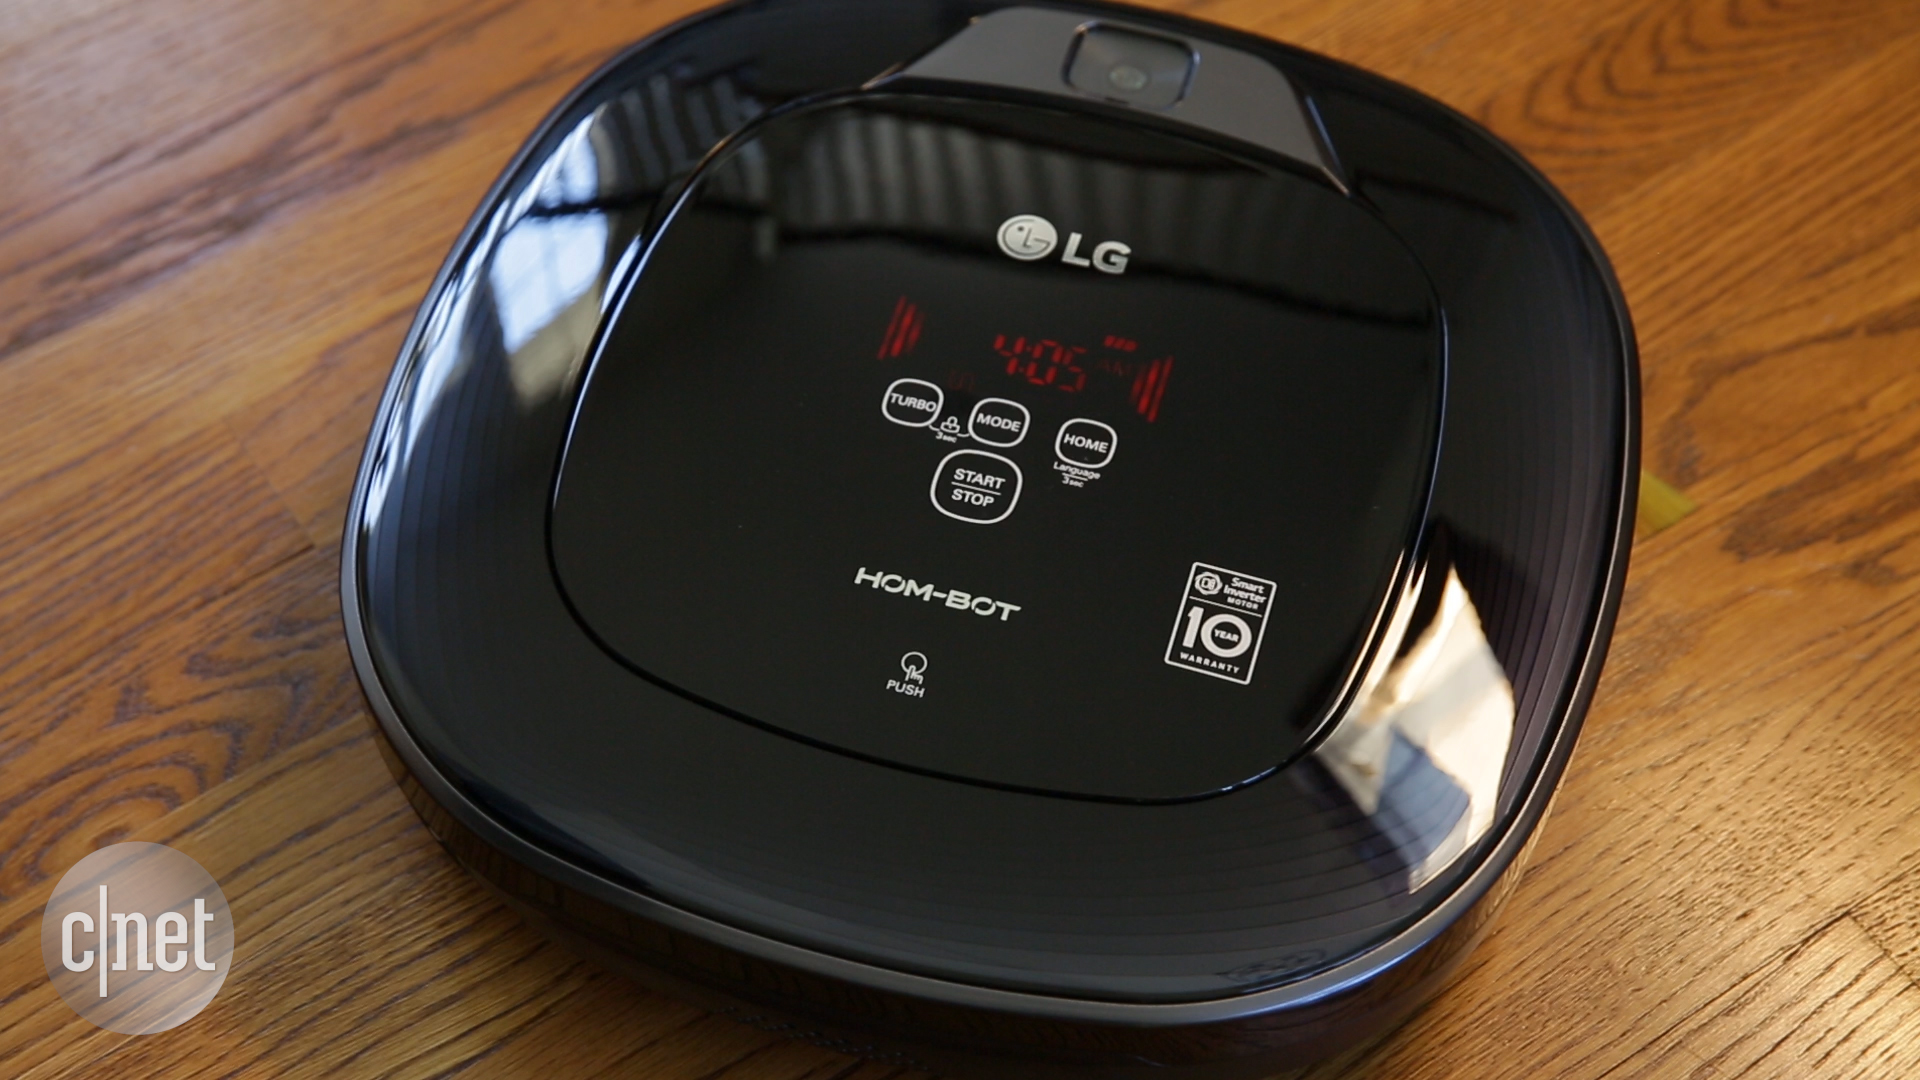 Video: The LG Hom-Bot Square can't outclean the competition